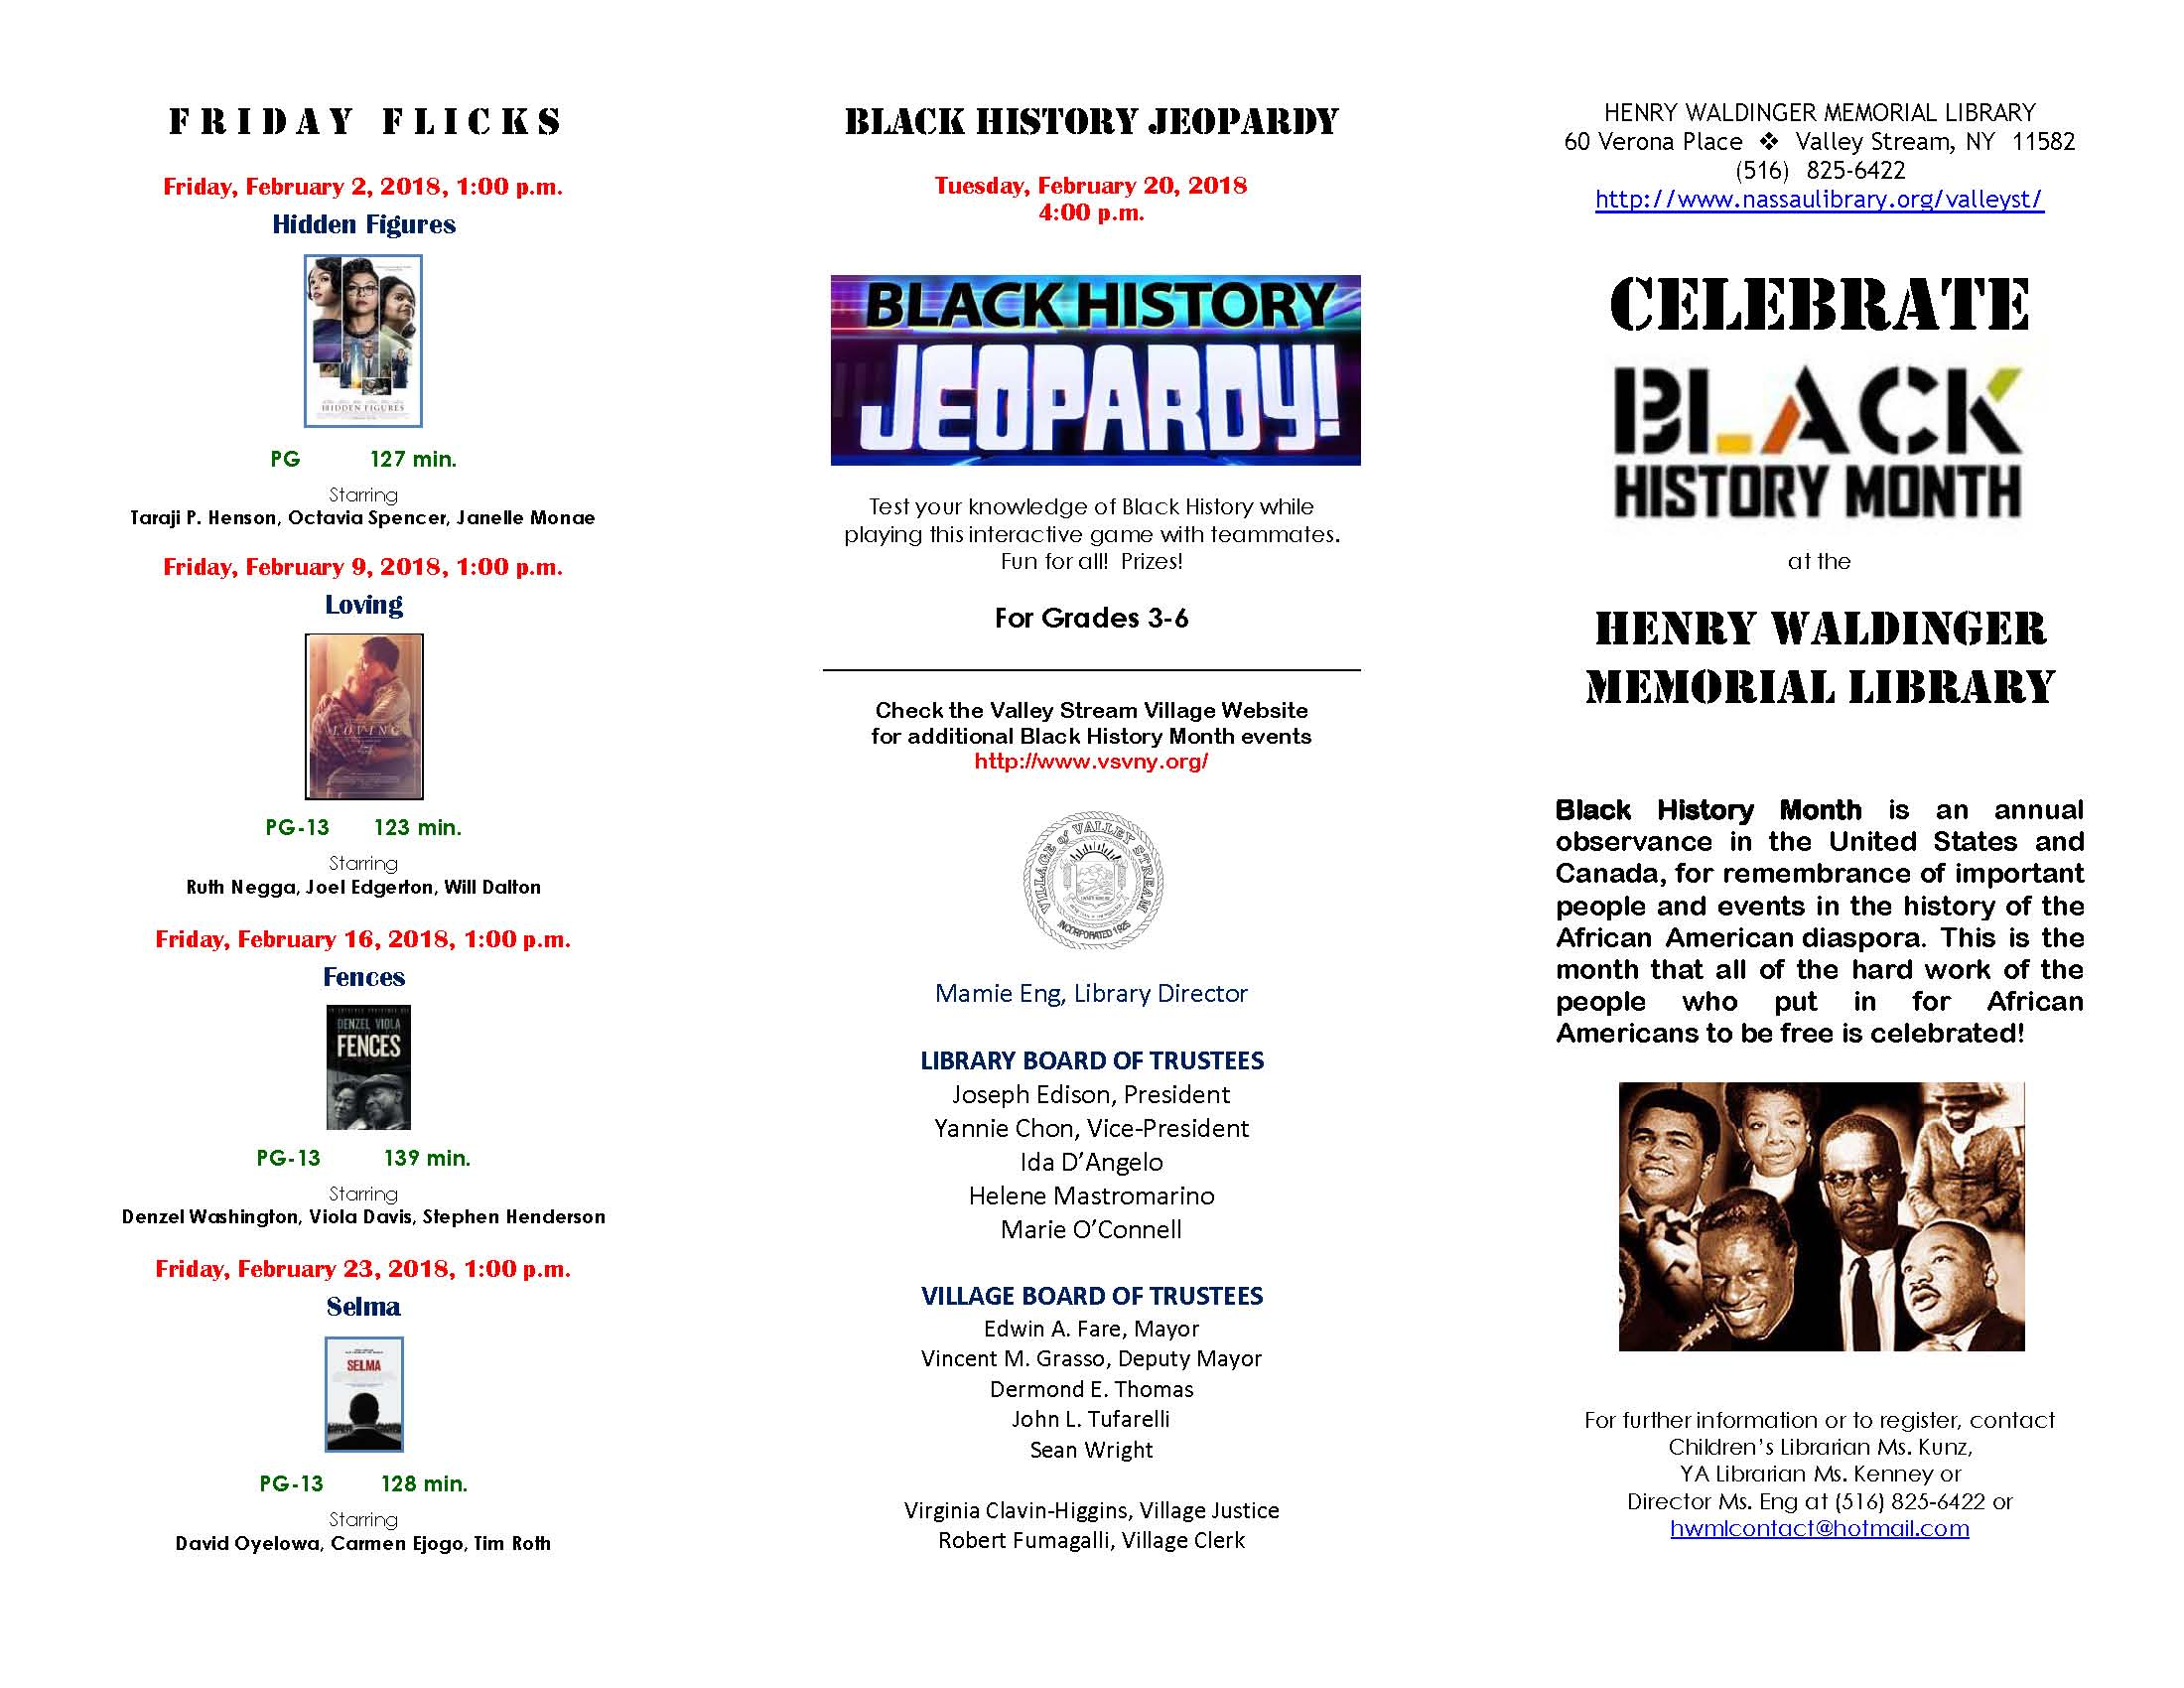 Village of valley stream click the images below to see the full calendar of events for the henry waldinger memorial library xflitez Images